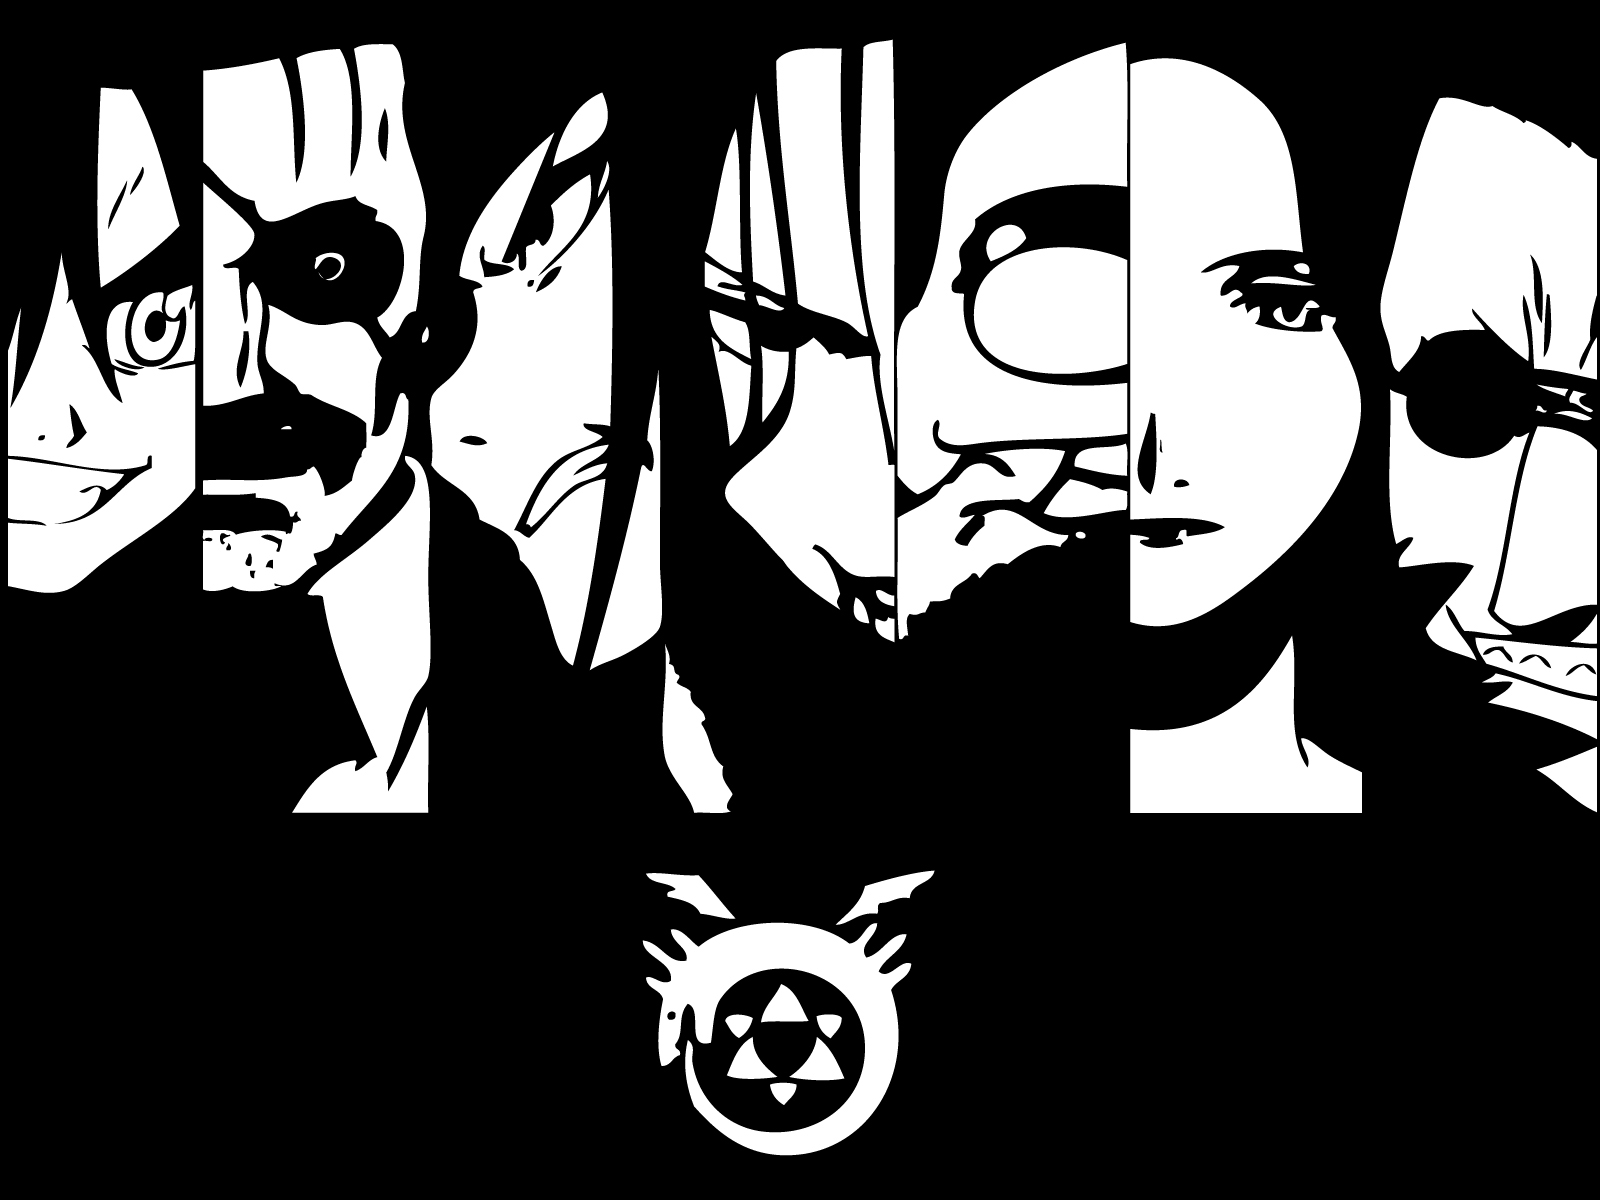 2003 anime homunculi fullmetal alchemist know your meme edward elric alphonse elric roy mustang wrath black black and white cartoon fictional character art monochrome buycottarizona Choice Image